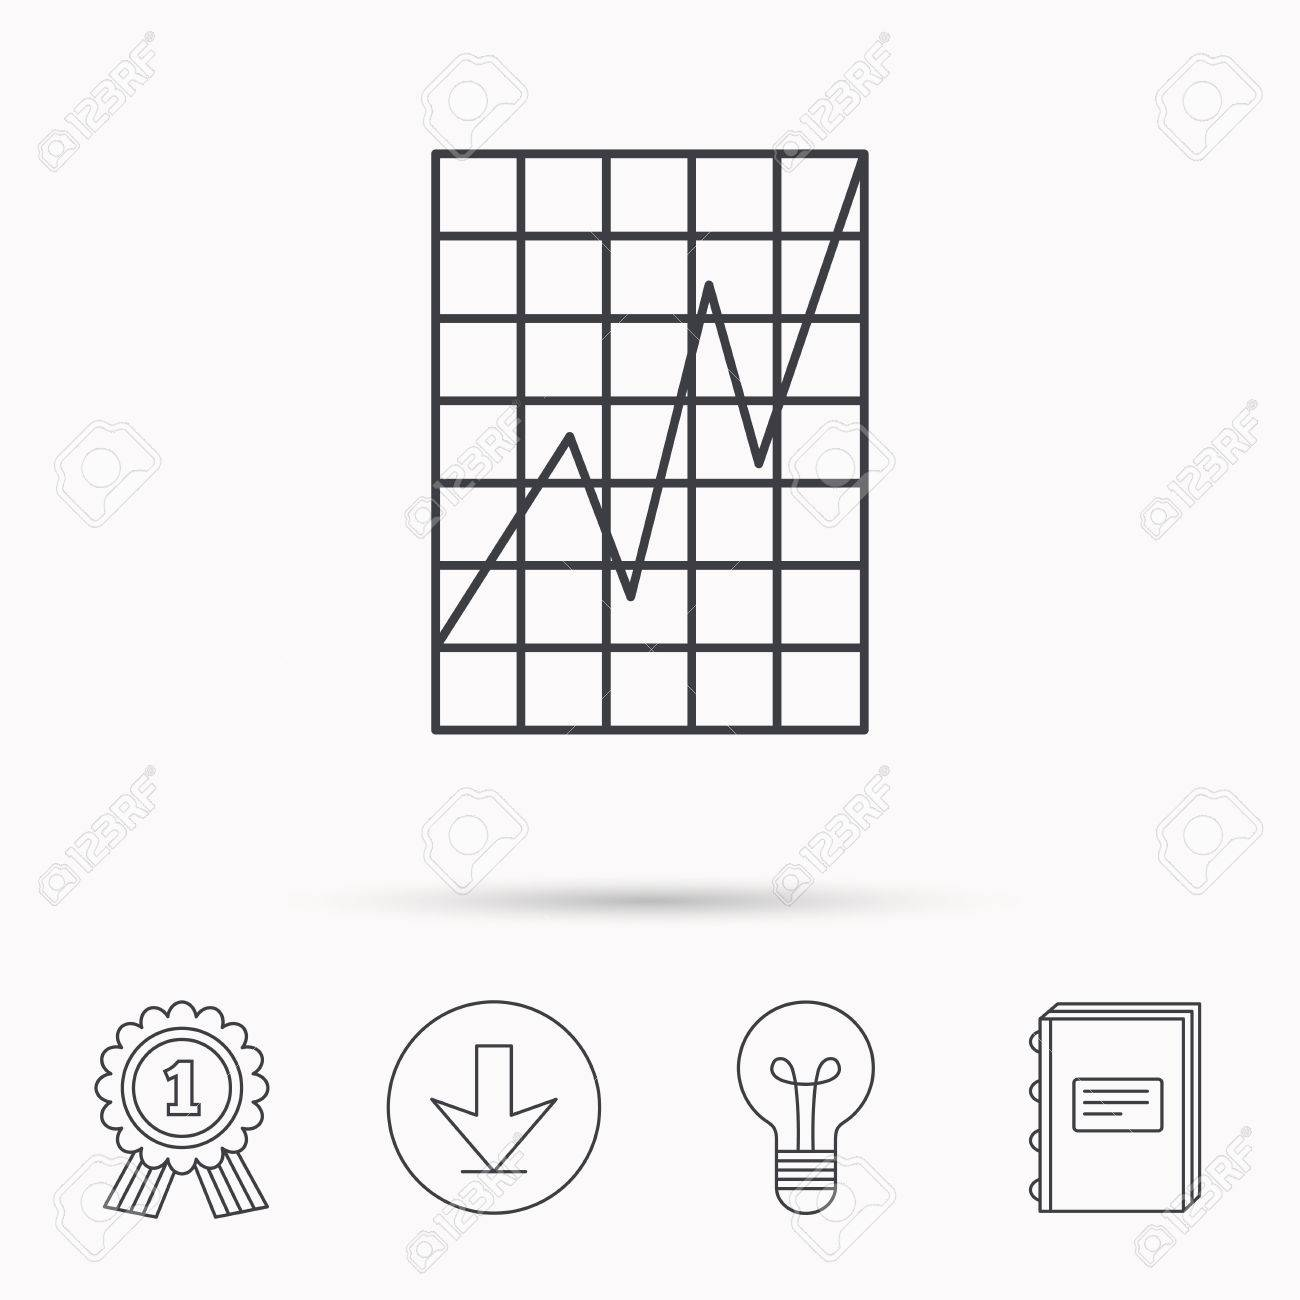 Chart curve icon graph diagram sign demand growth symbol download banco de imagens chart curve icon graph diagram sign demand growth symbol download arrow lamp learn book and award medal icons ccuart Choice Image